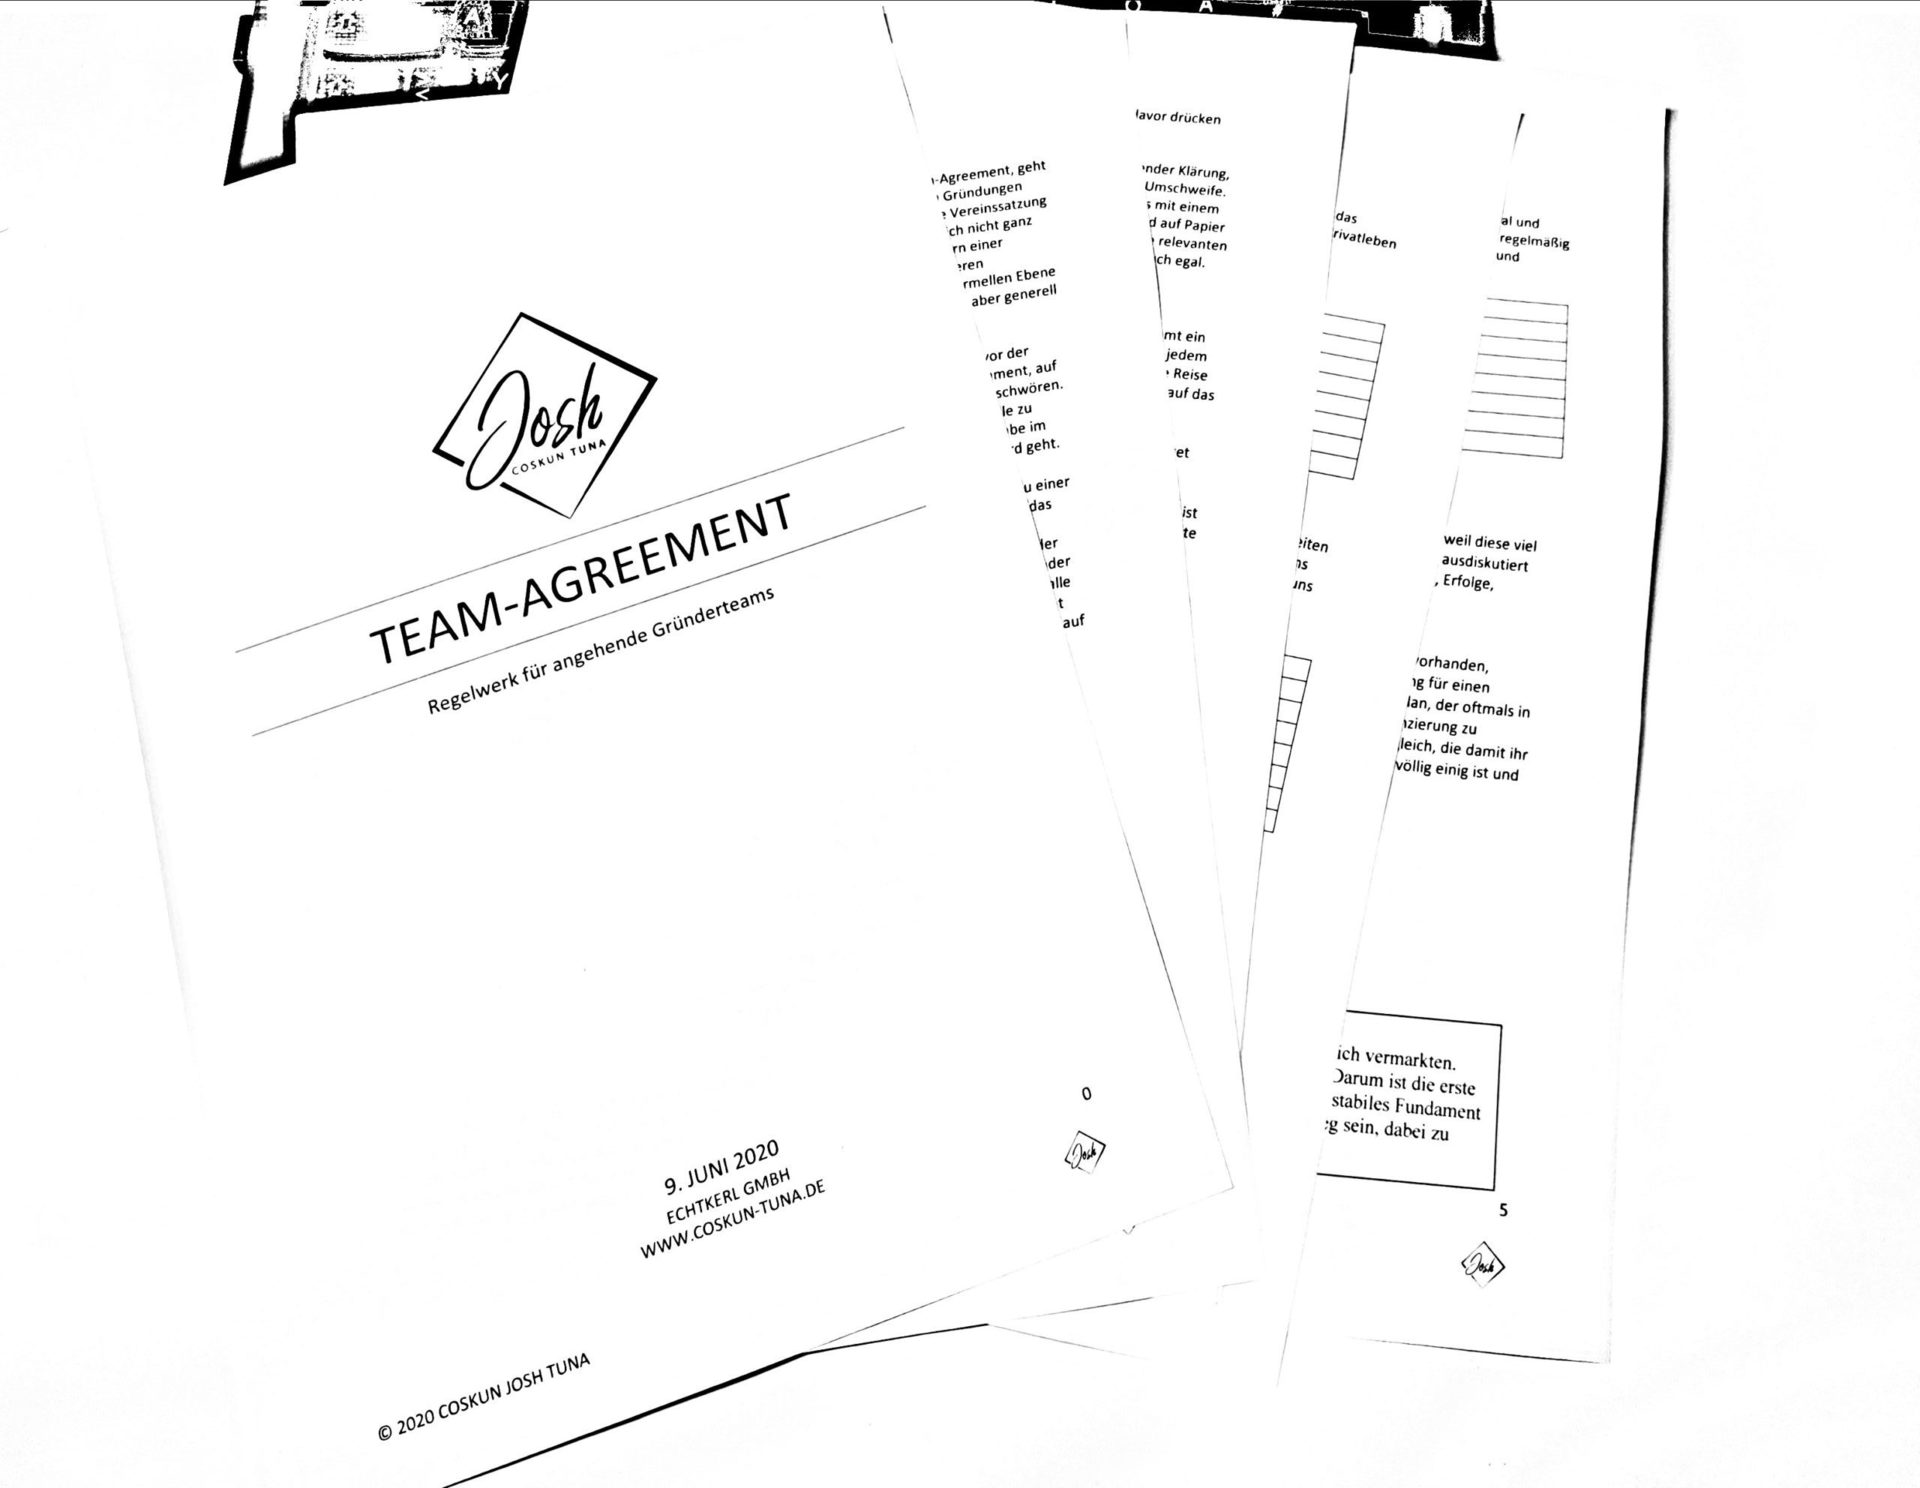 Team Agreement Josh